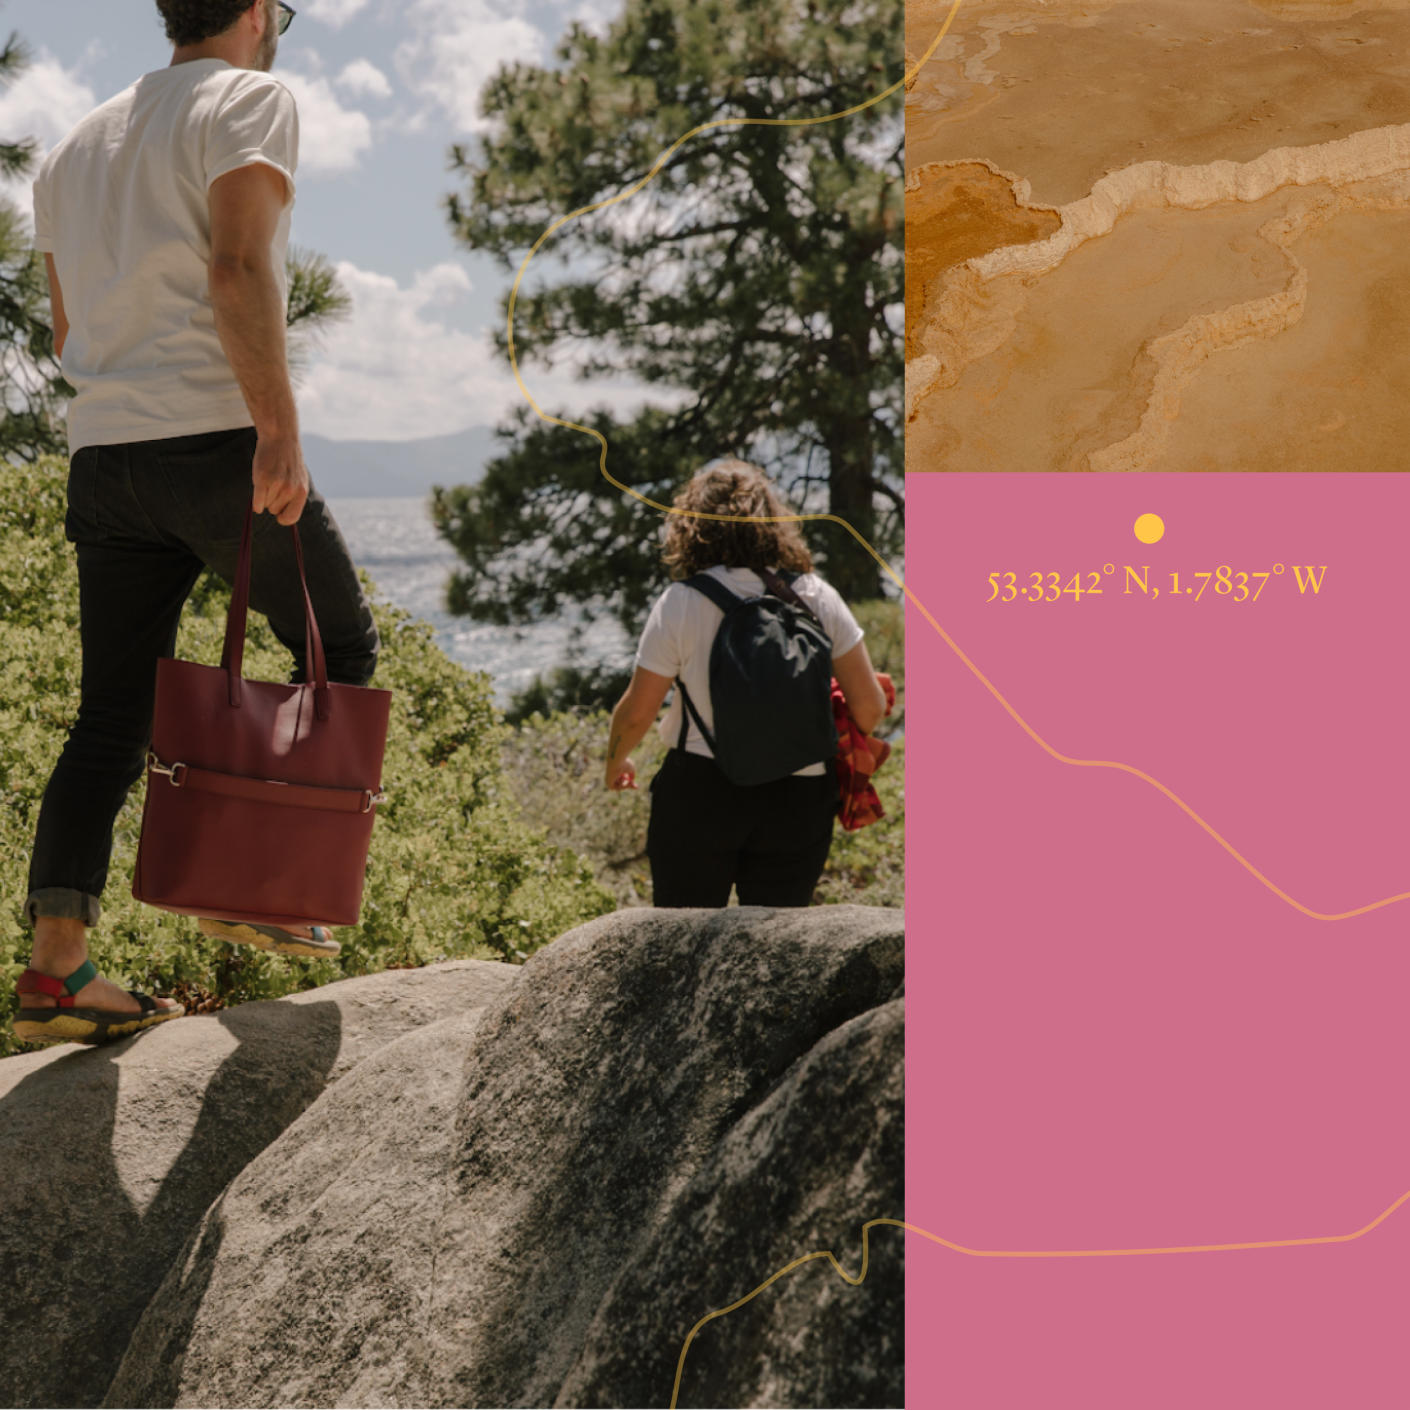 Left) A man and woman hiking over some rocks with a backpack and tote bag moving towards water-(Right) top has brown topography, bottom with geographic coordinates in pink.